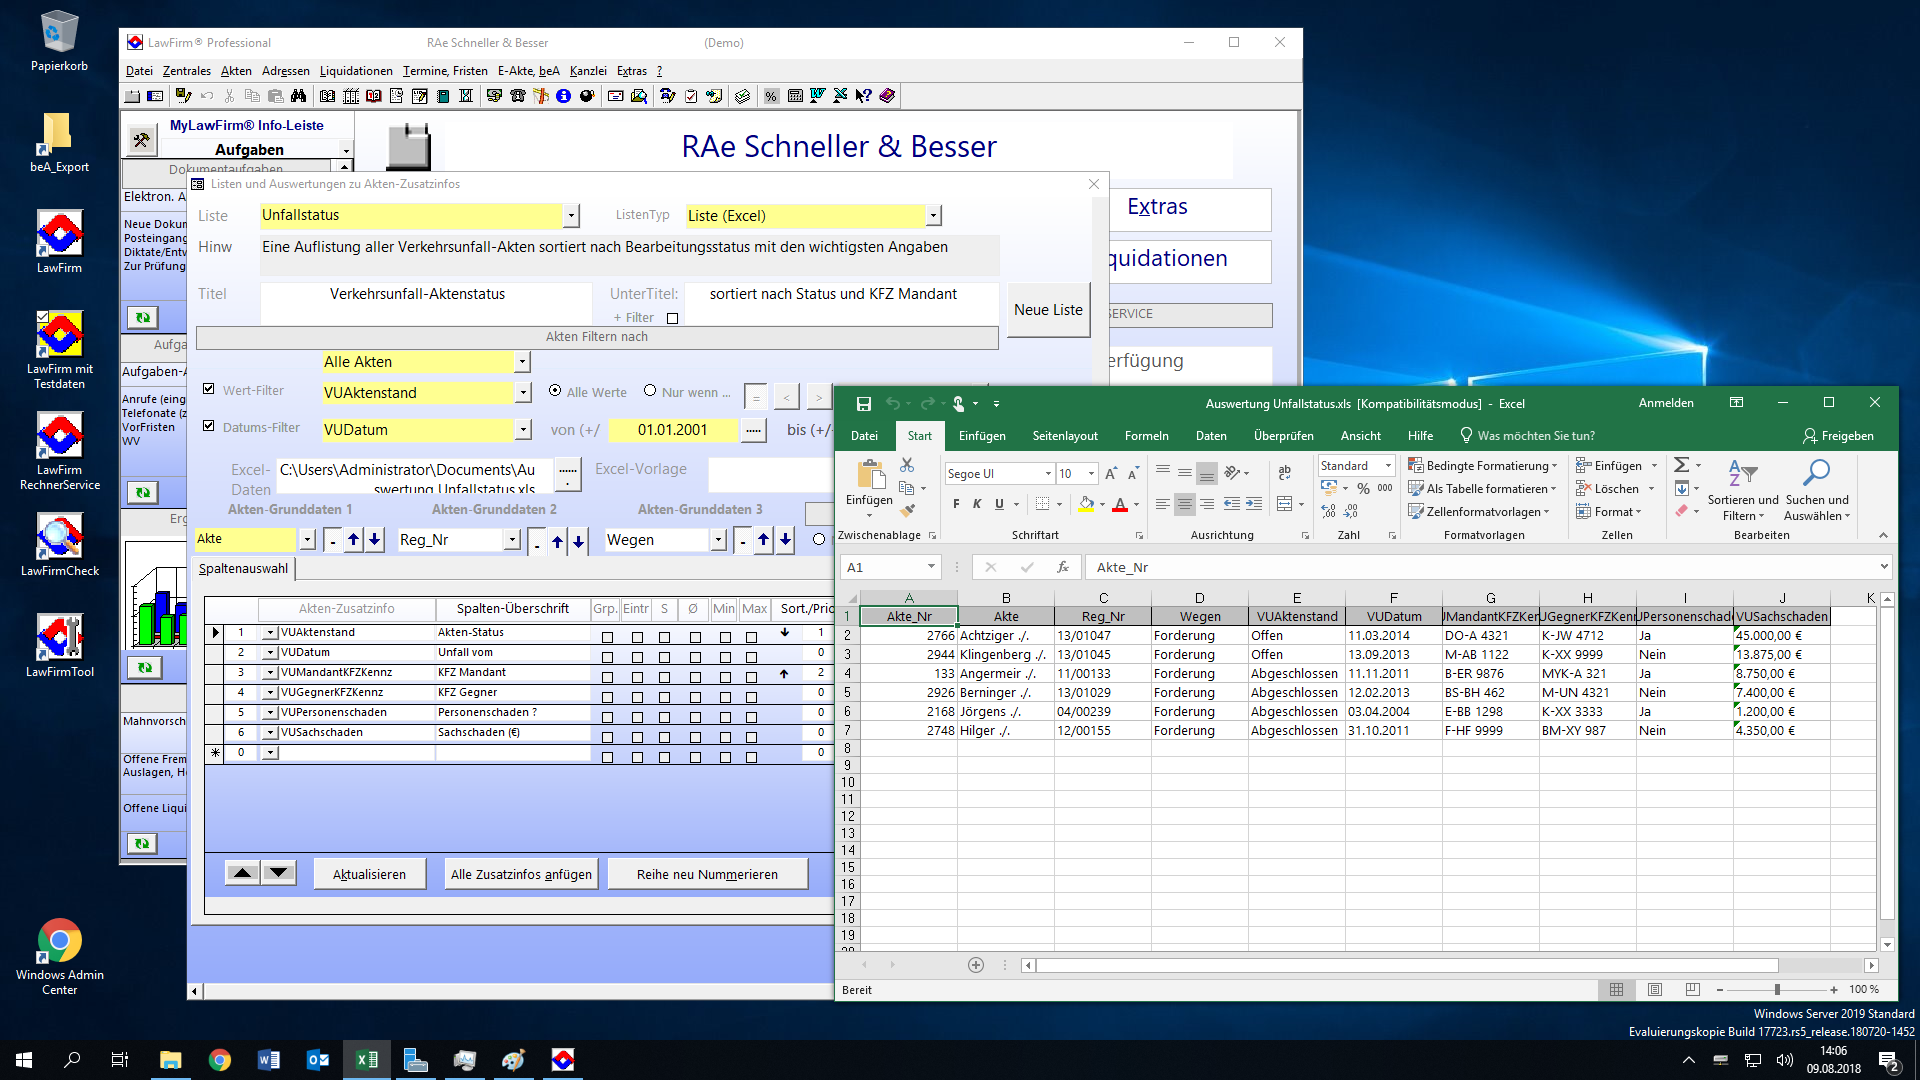 LawFirm® + Excel 2016 Integration unter Windows Server 2019 - Export von Statistiken und Auswertunge9